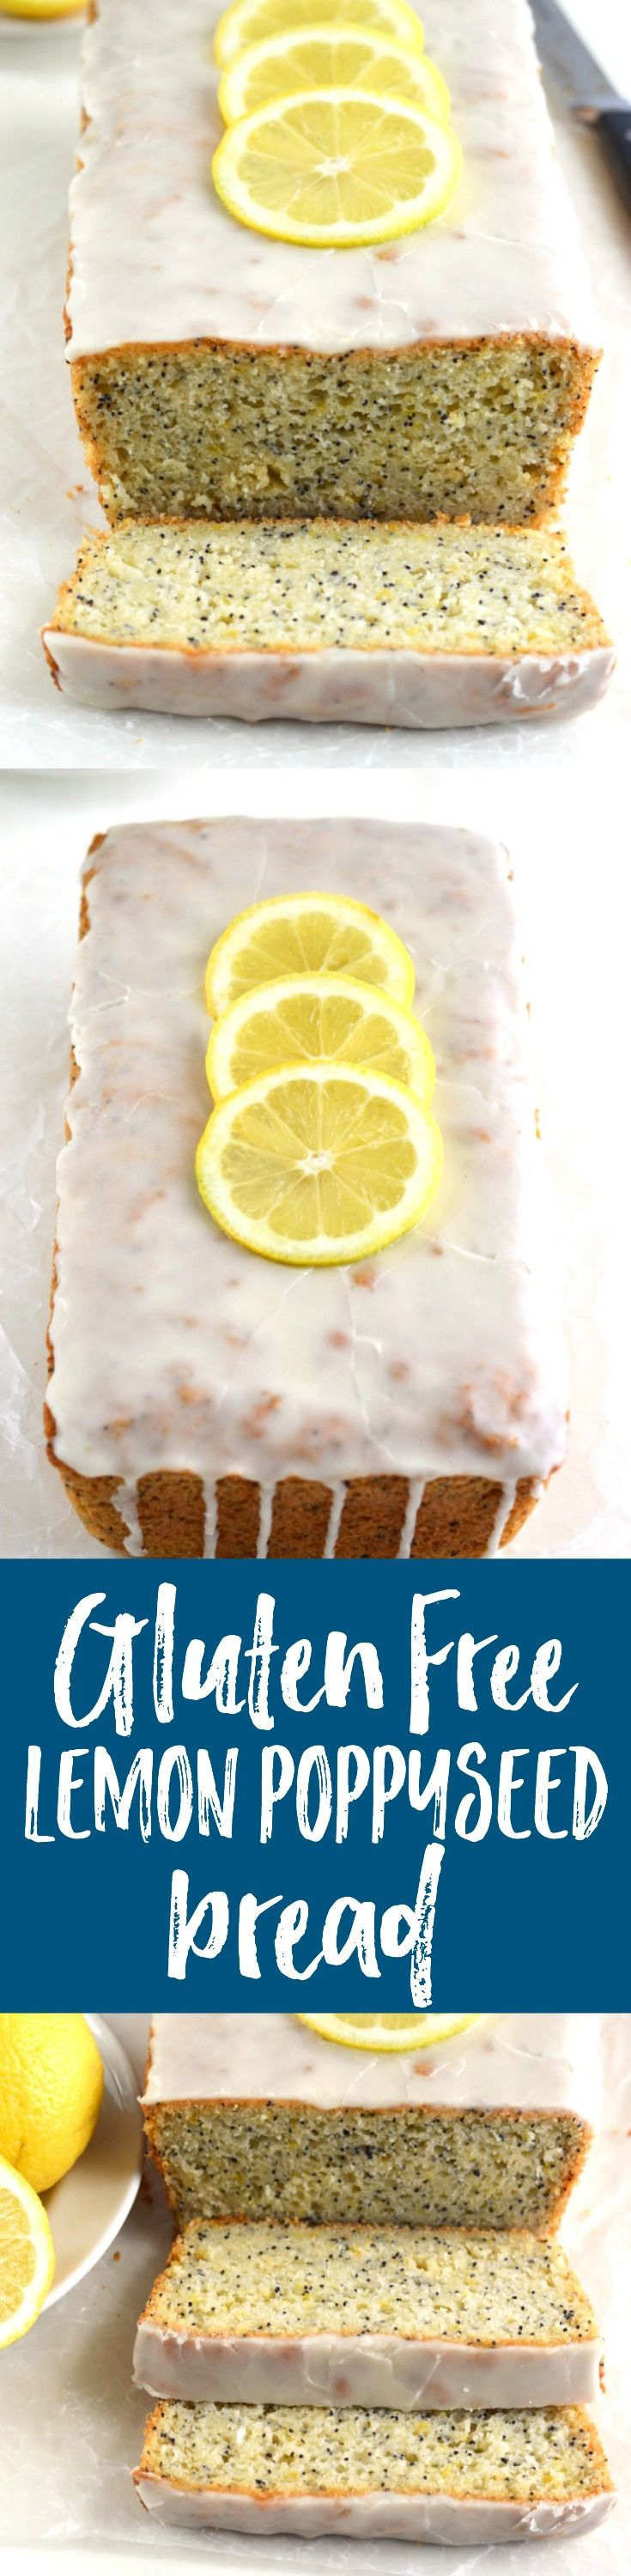 This gluten-free/dairy-free lemon poppyseed bread is bright, fresh, and has the most amazing lemon glaze!